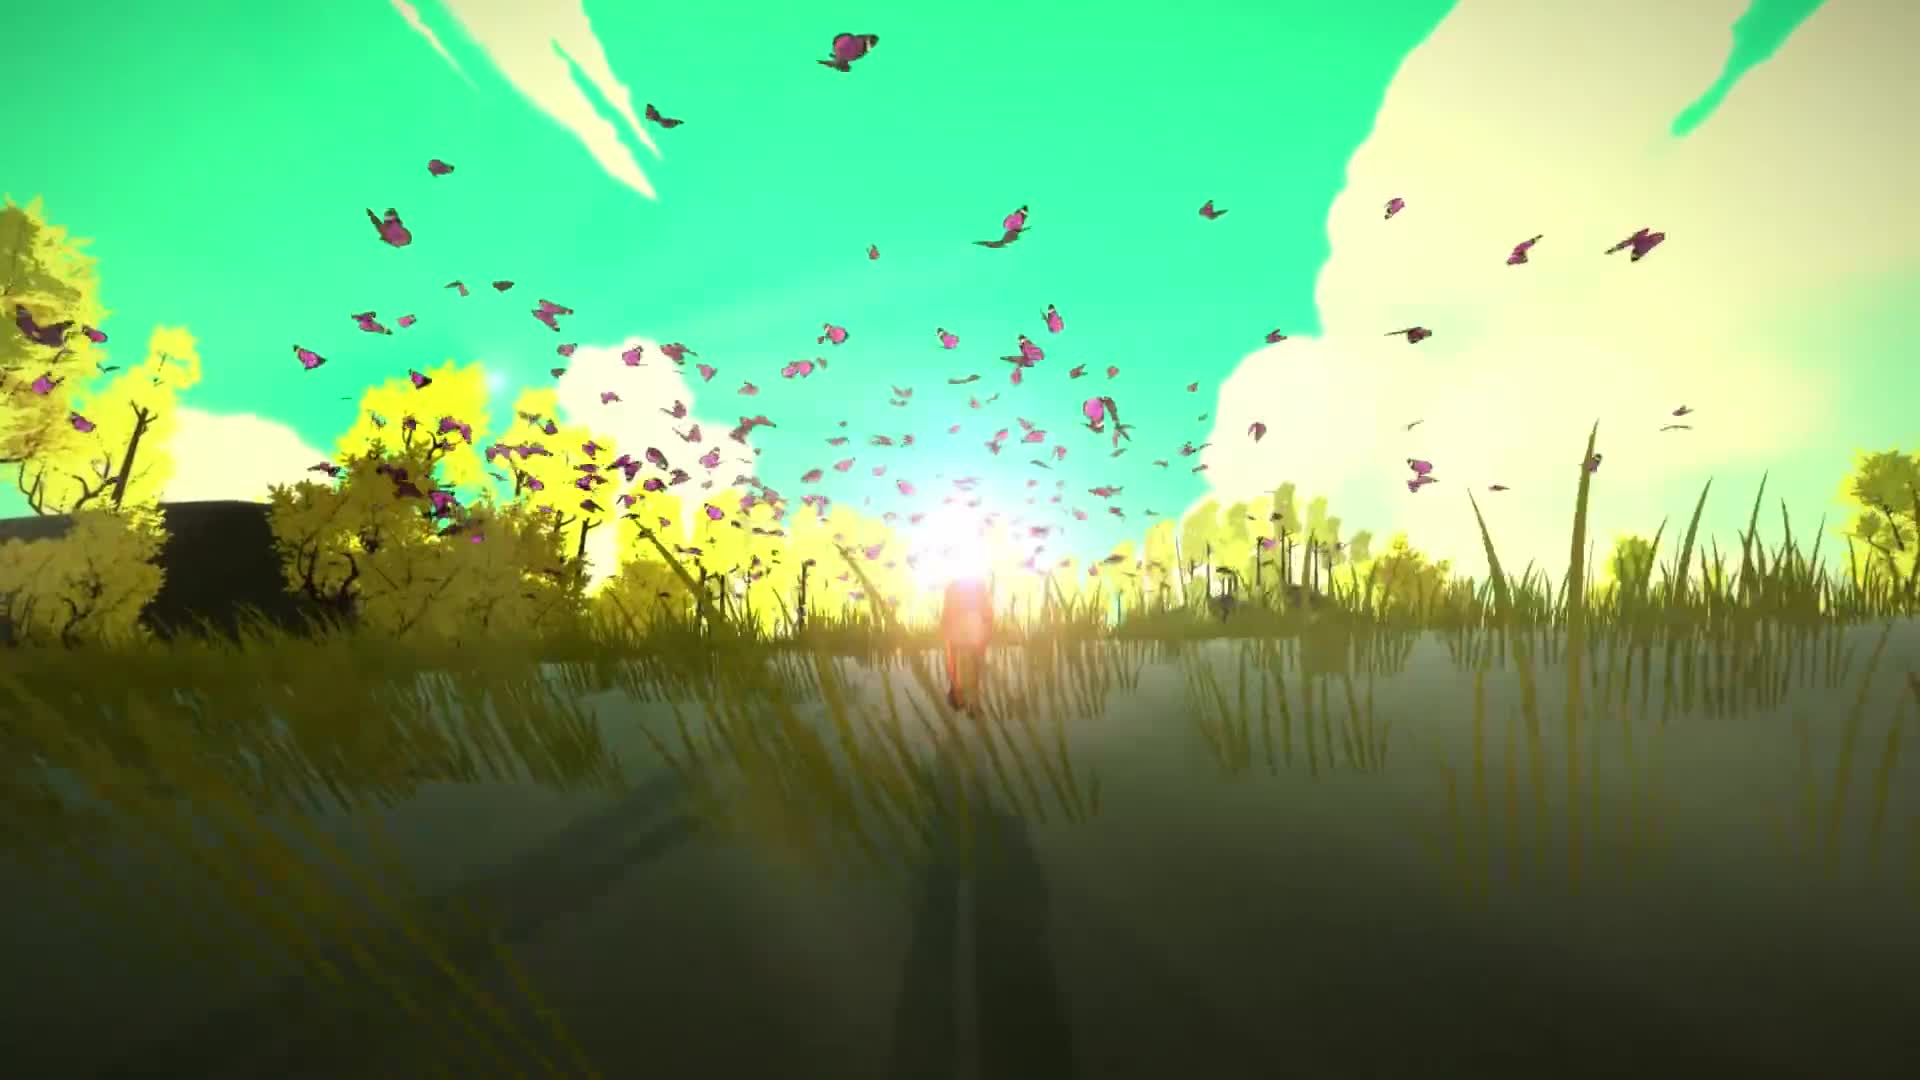 exploration, firewatch, fox, gone home, journey, nature, walking simulator, The First Tree - Official Teaser GIFs